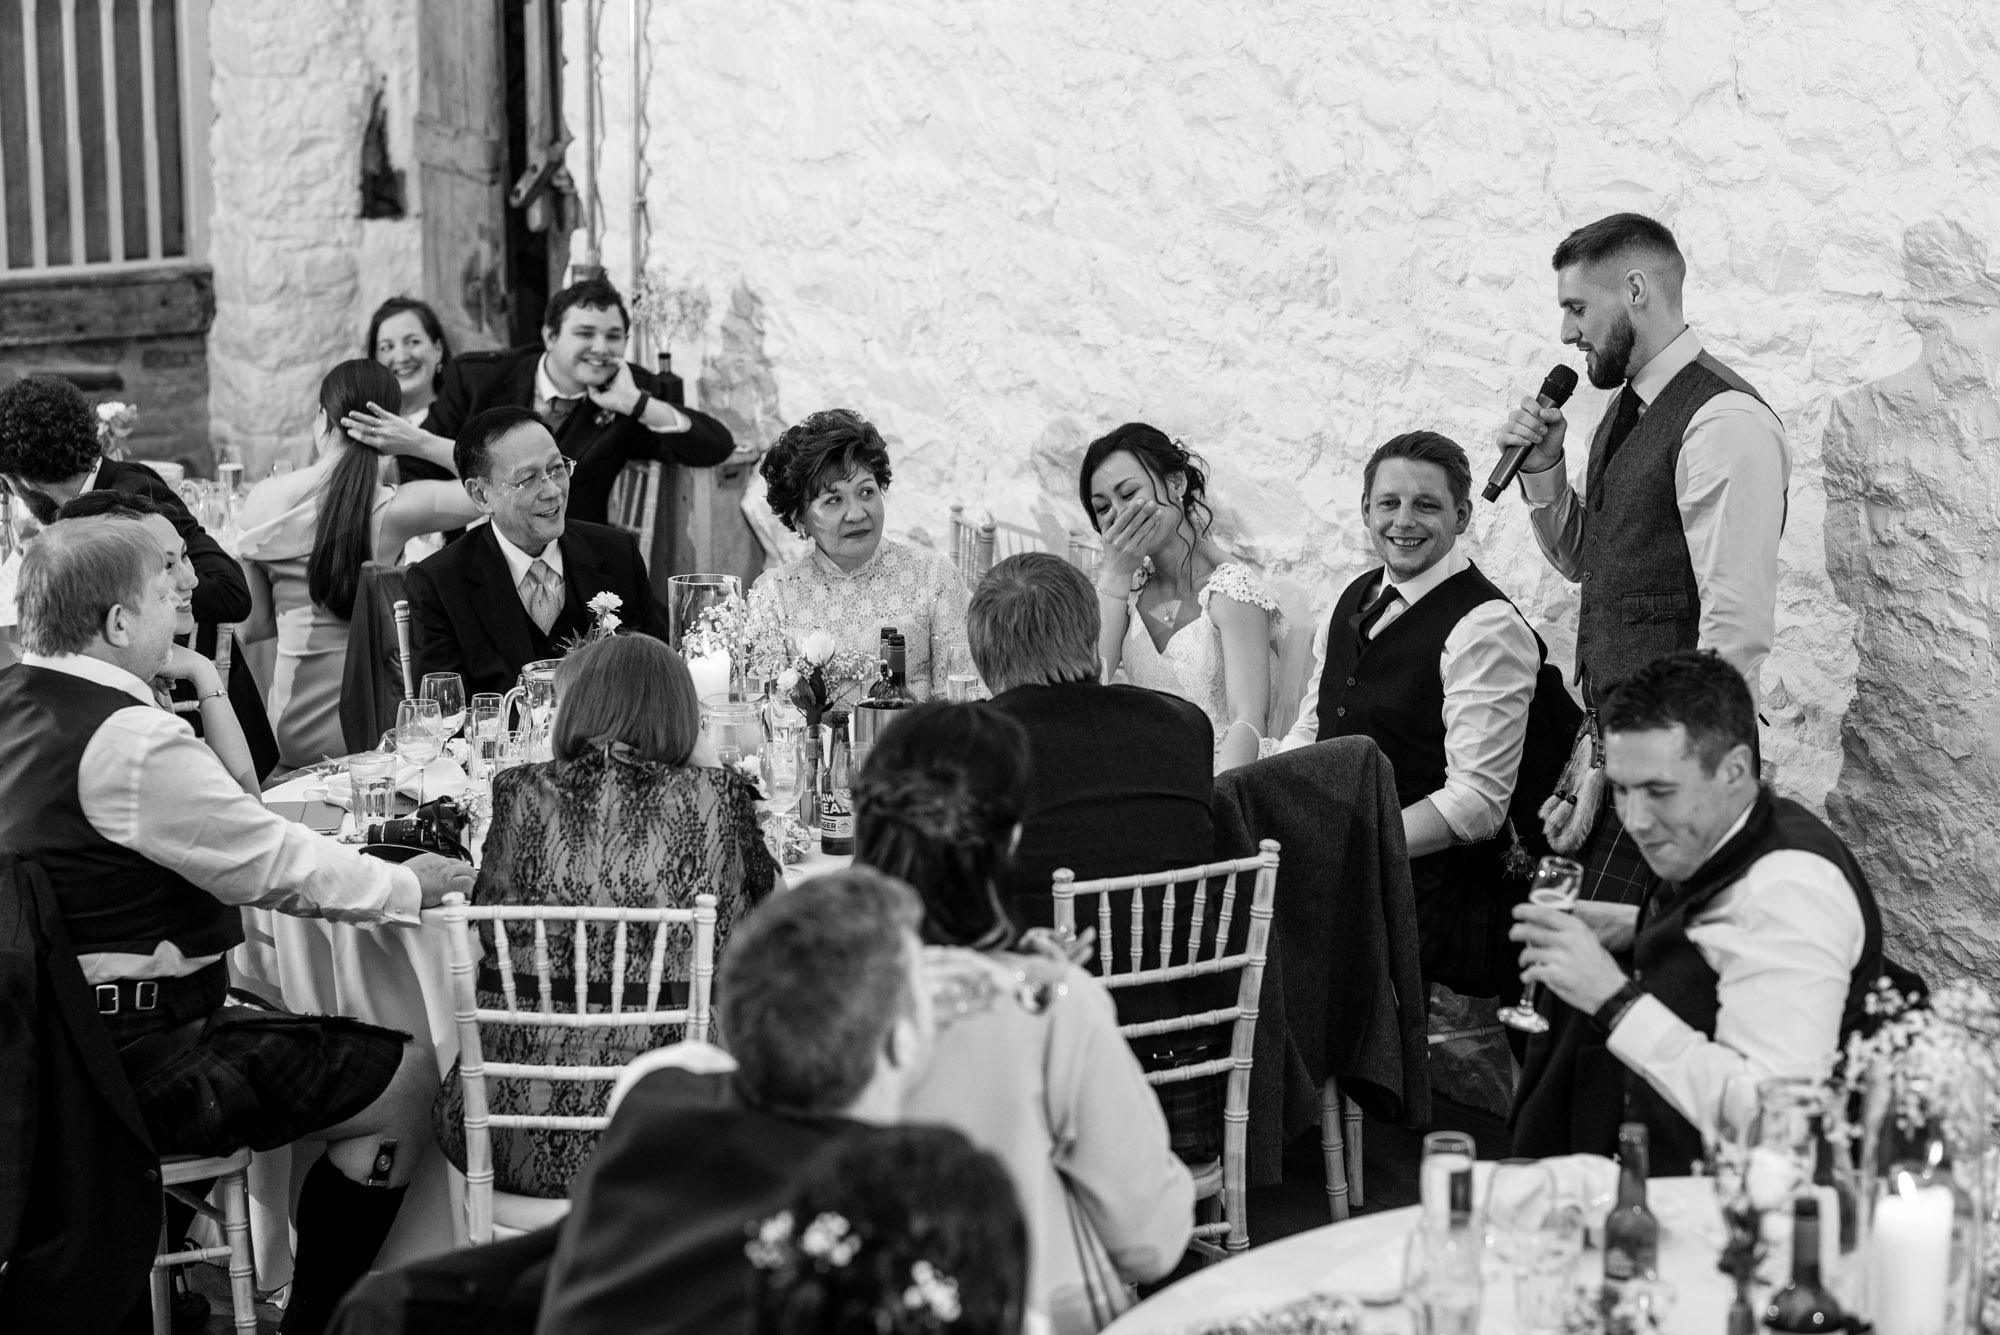 Lots of wedding guests are visible as the best man stands to deliver his speech.